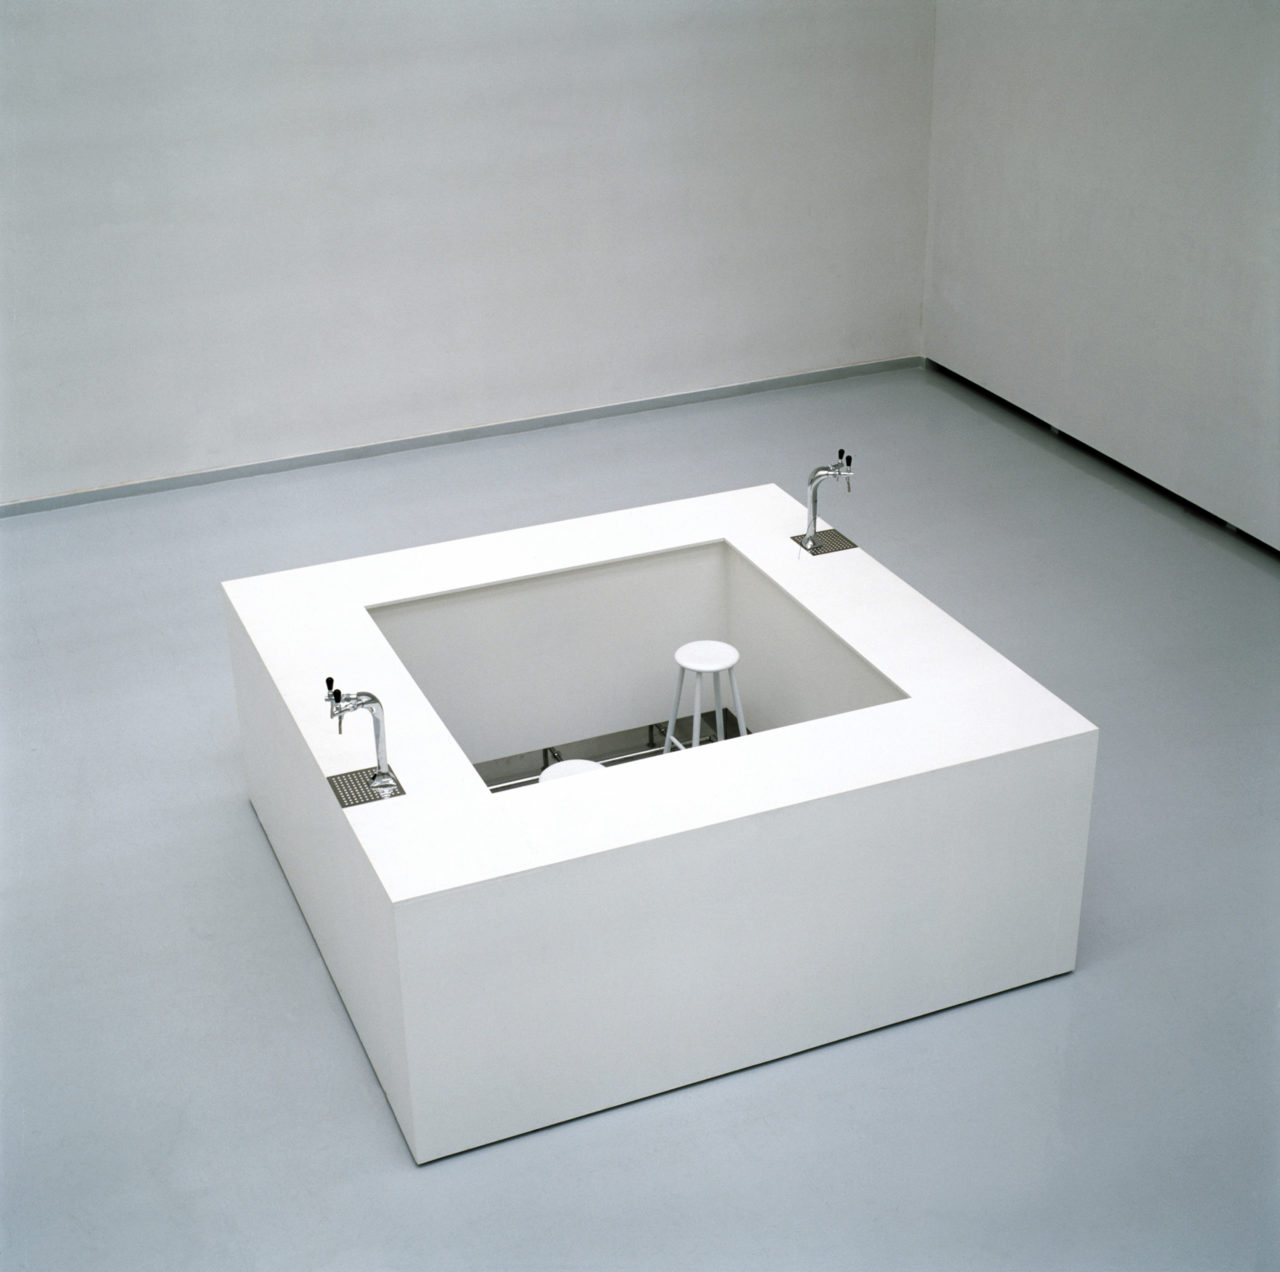 Elmgreen & Dragset, Powerless Structure, fig. 21 (Queer Bar), 1998